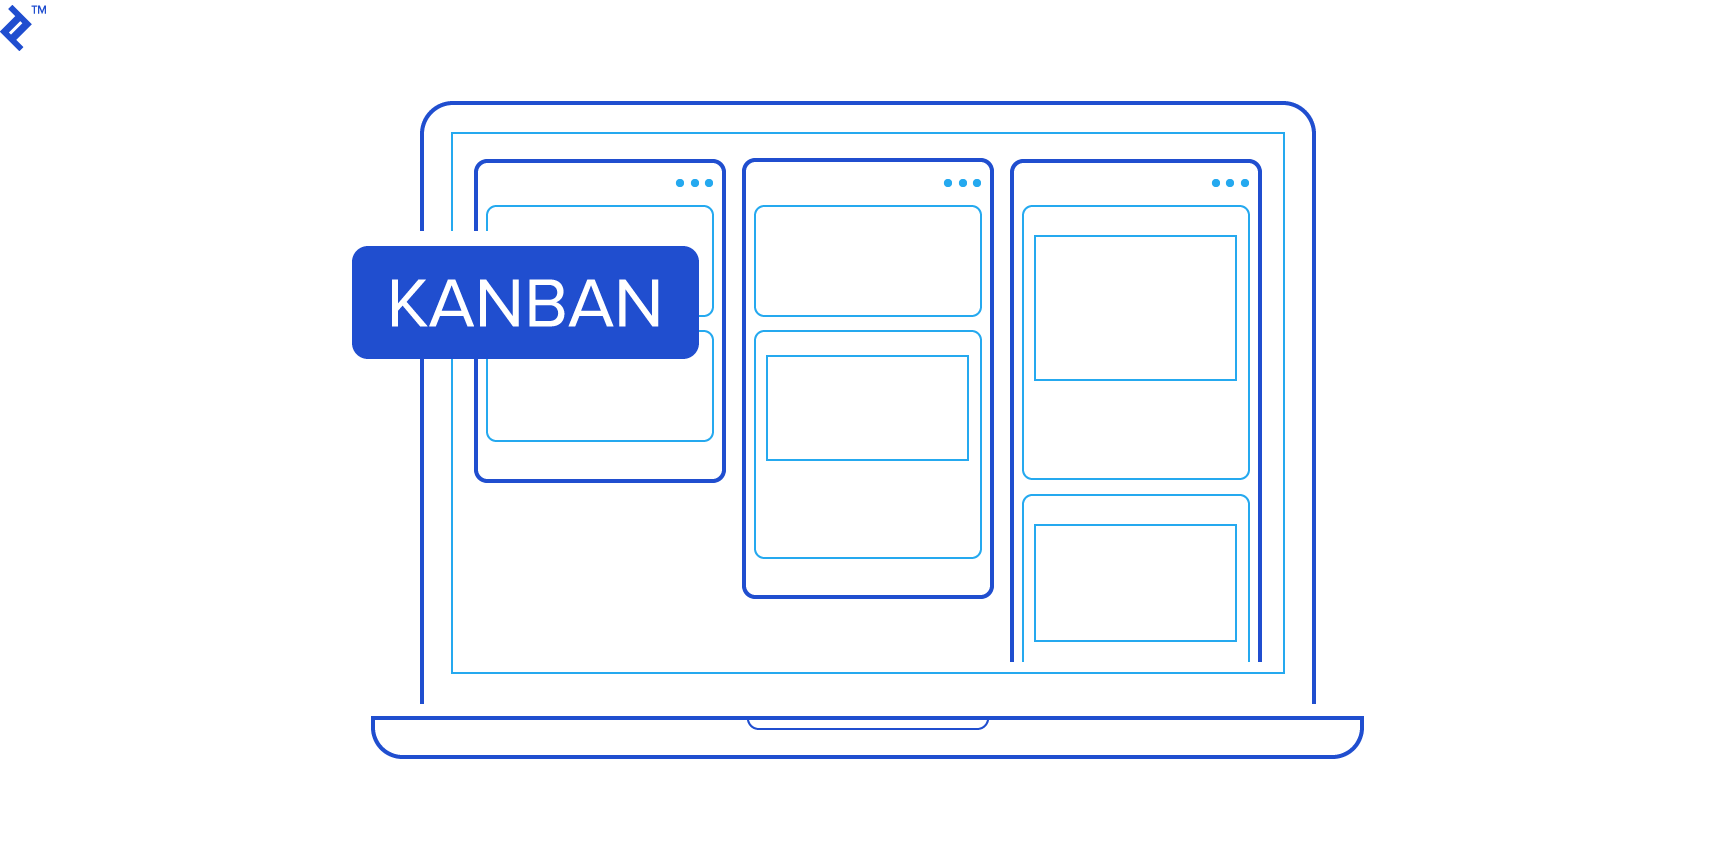 Kanban boards help visualize the workflow.